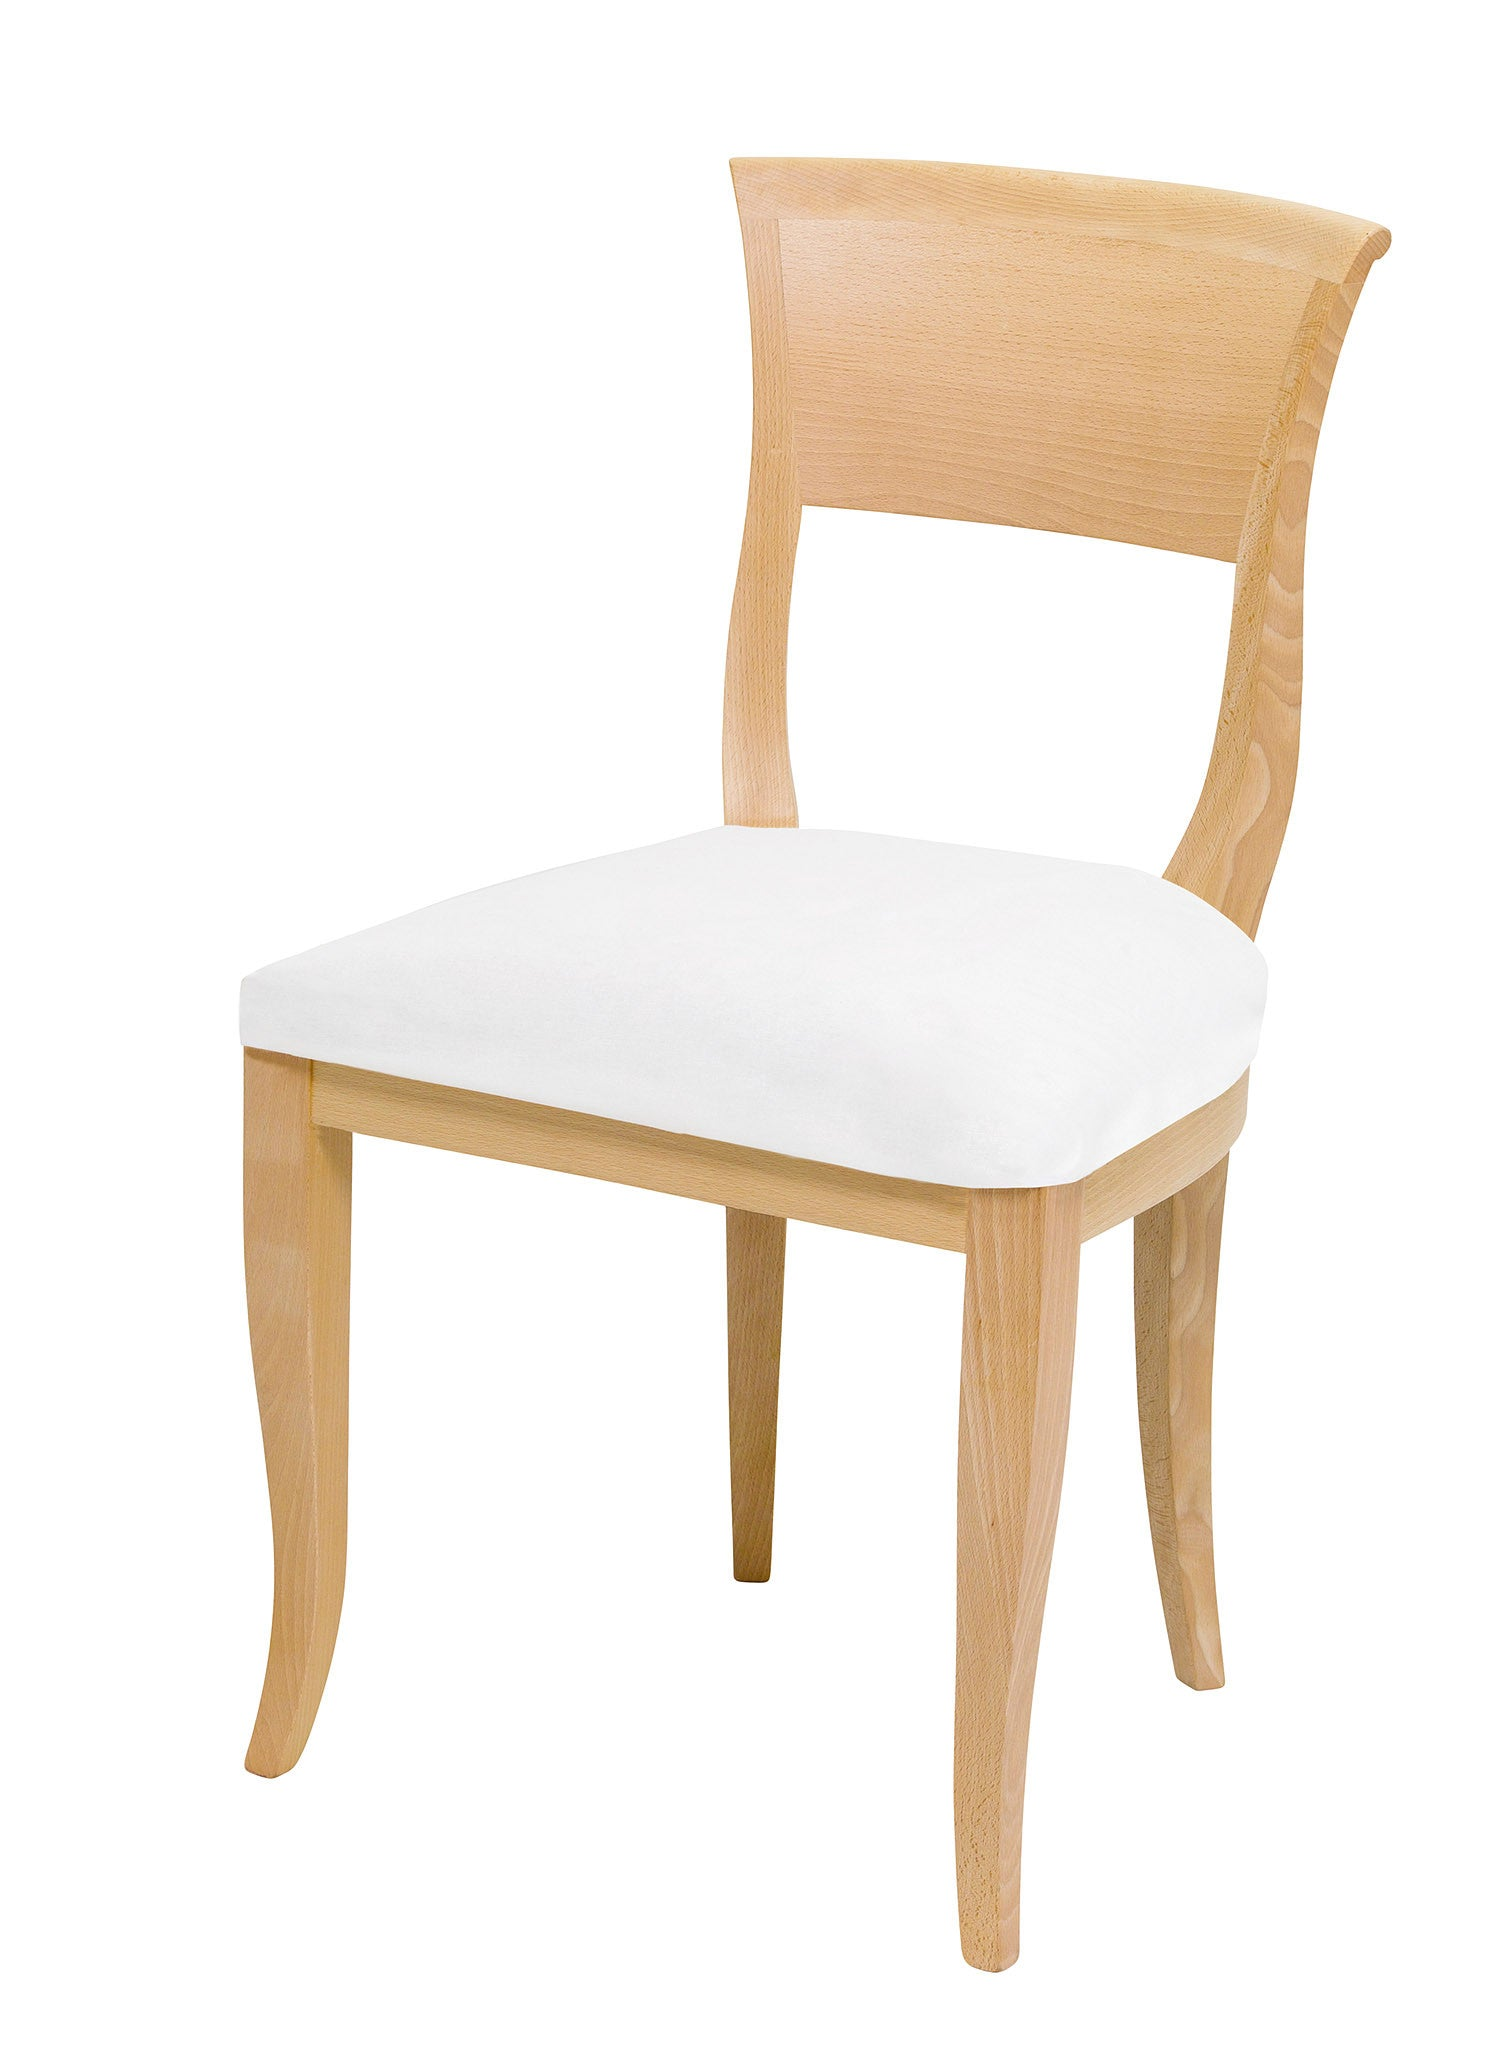 Art Deco Kate dining chair finished in natural wood with a plain upholstered seat.